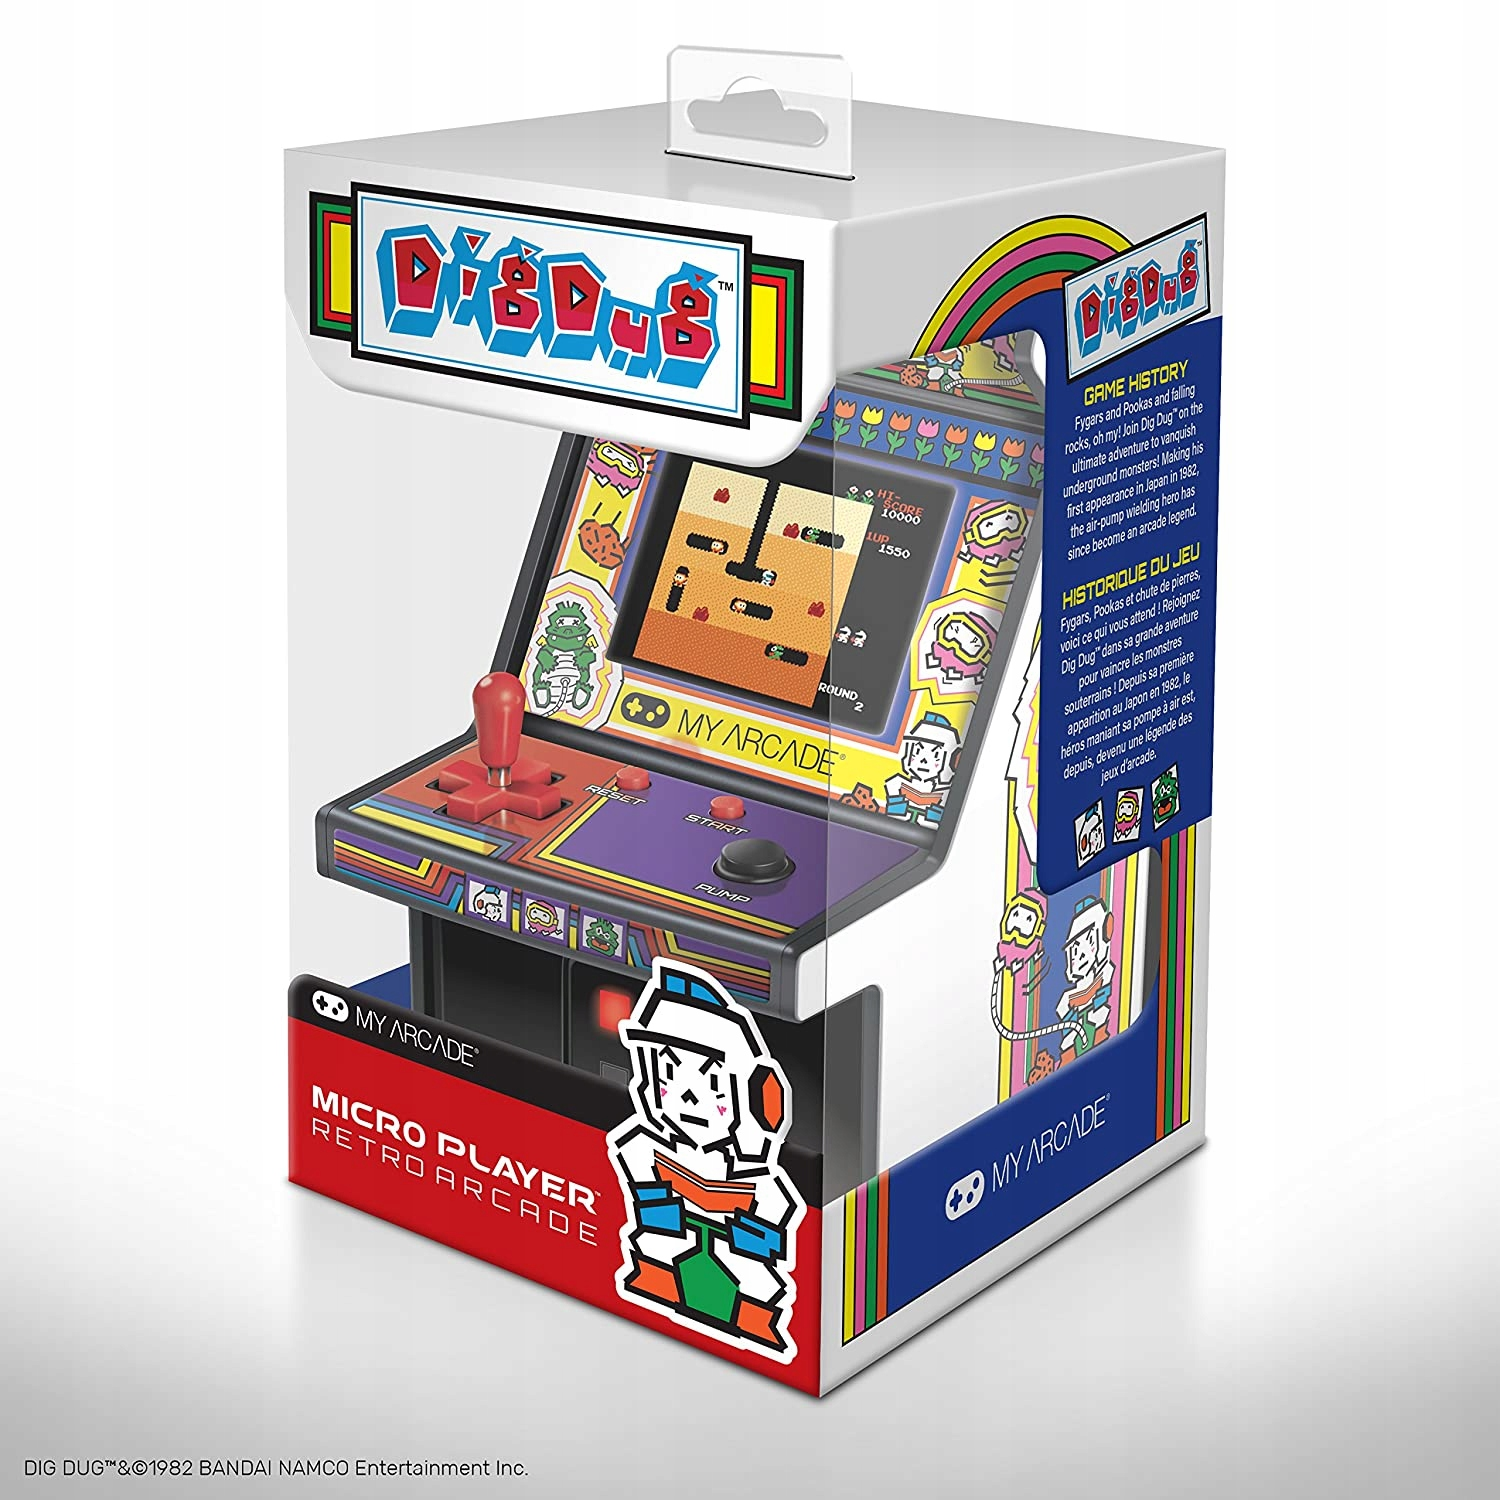 ARCAD GAME Micro Player Retro DIG Dug CONSOLE